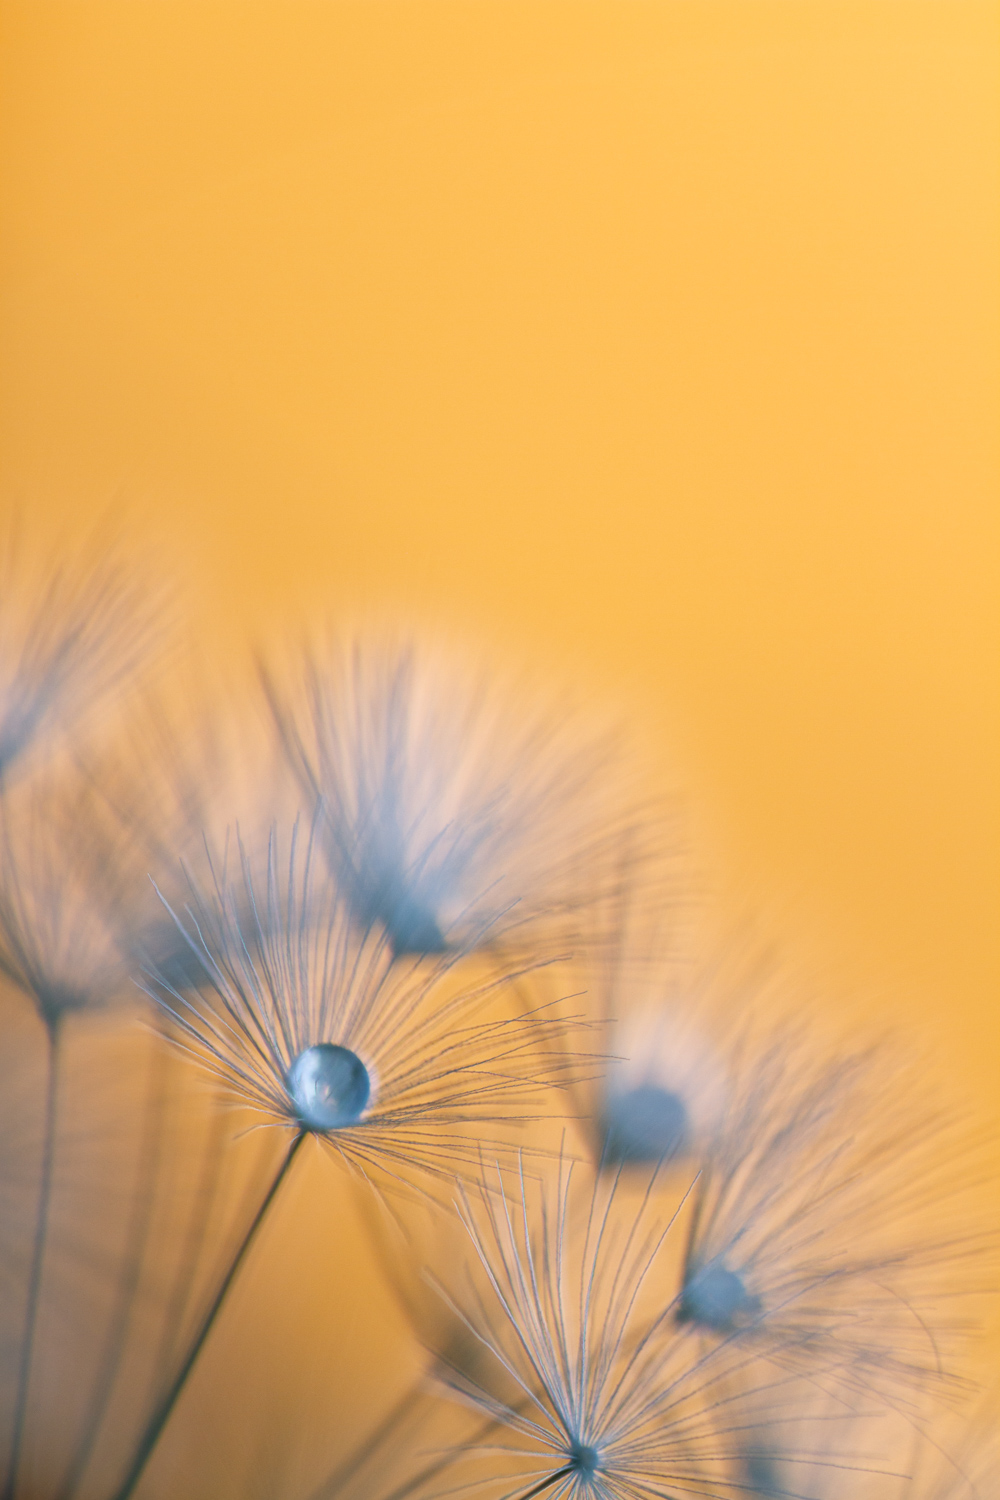 Macro shot of a flower against a yellow background